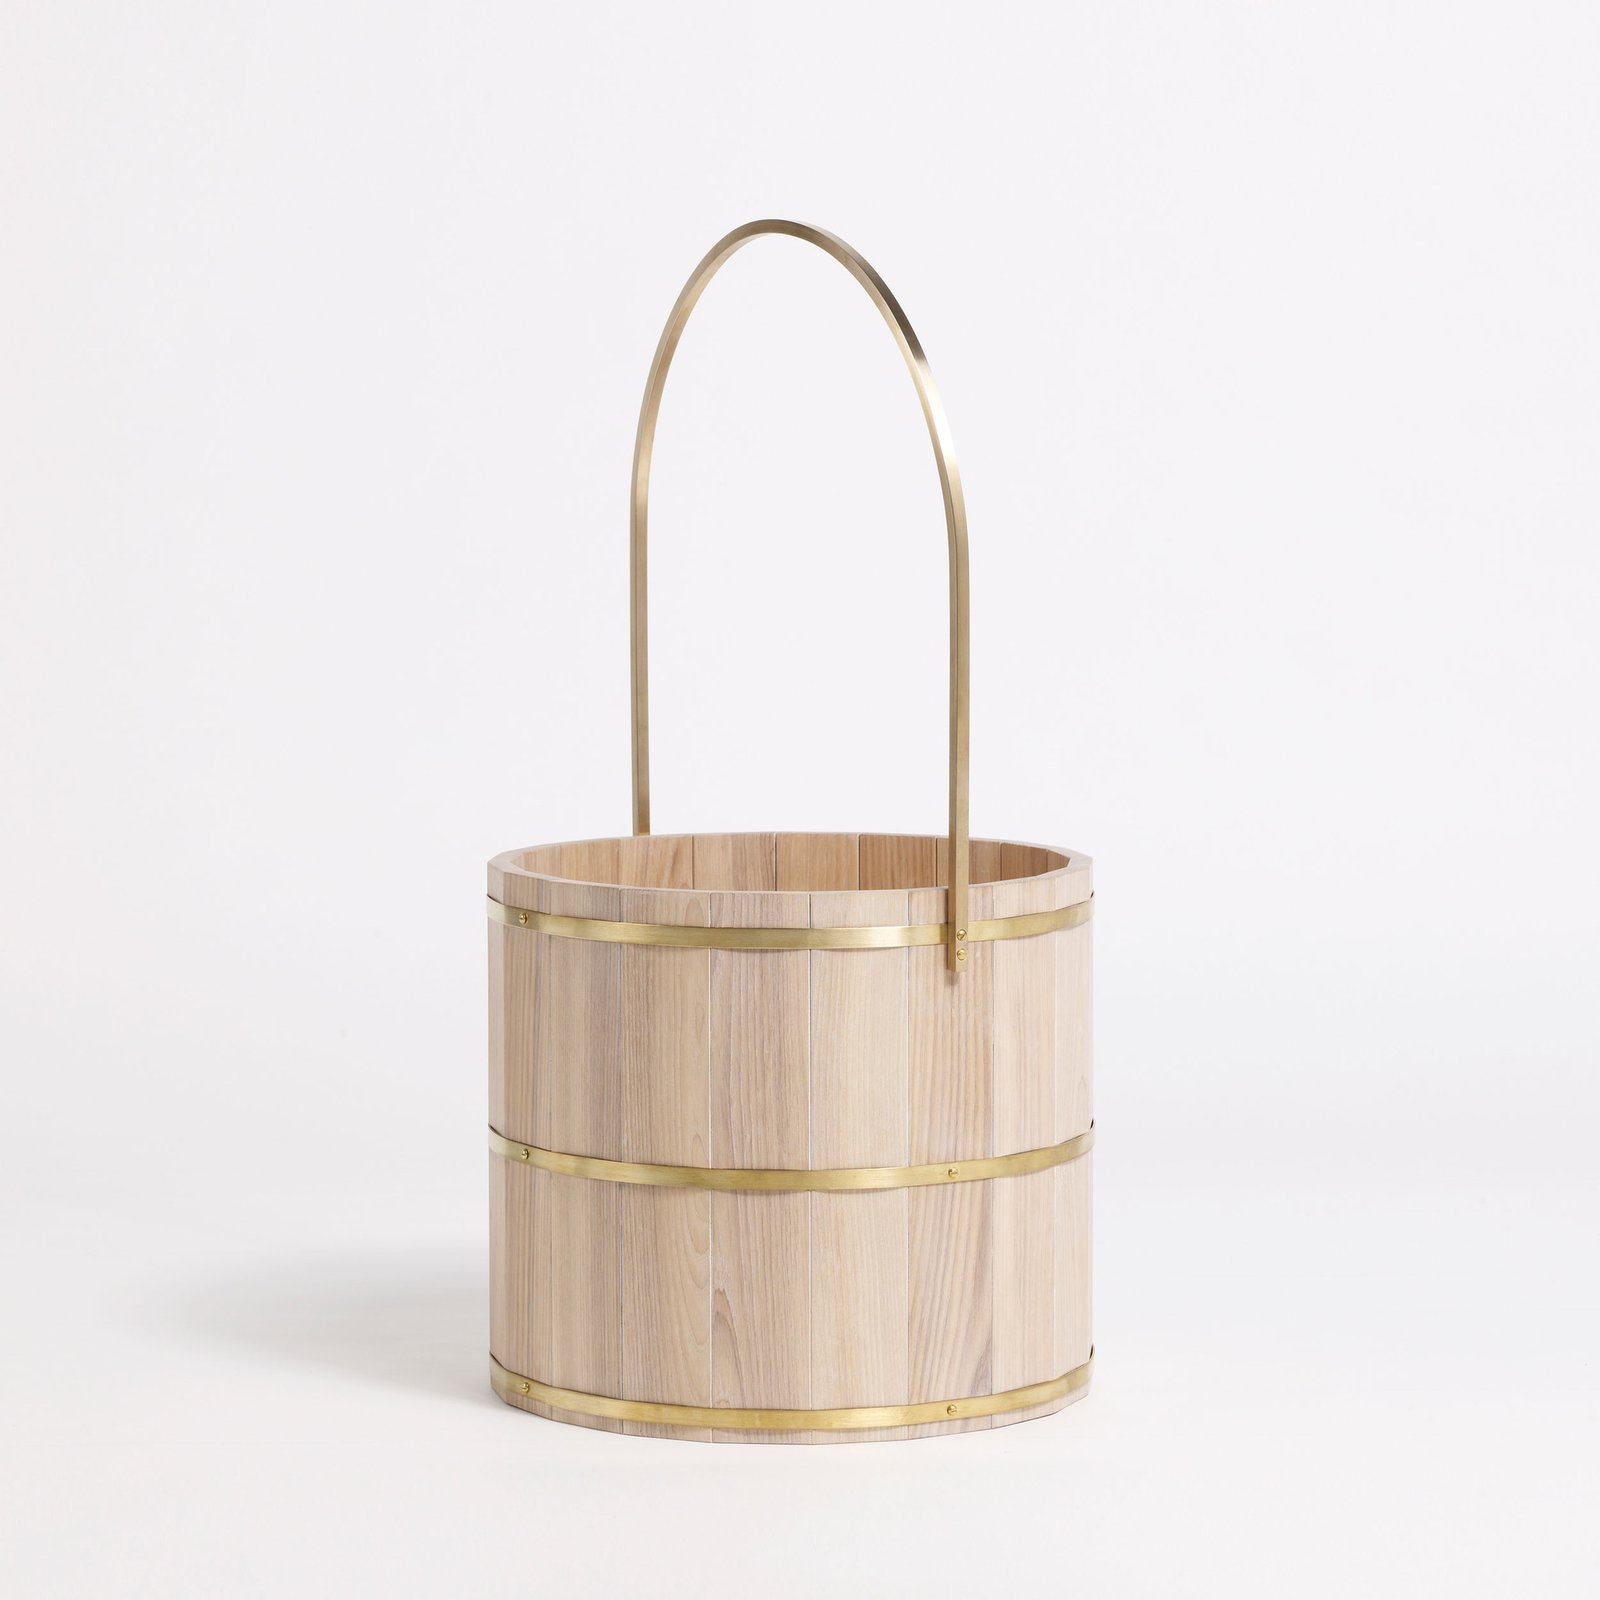 Another Country's Bucket ($600) is inspired by Finnish sauna accessories and is made from ash and brass.  Creative Ways to Store Firewood by Diana Budds